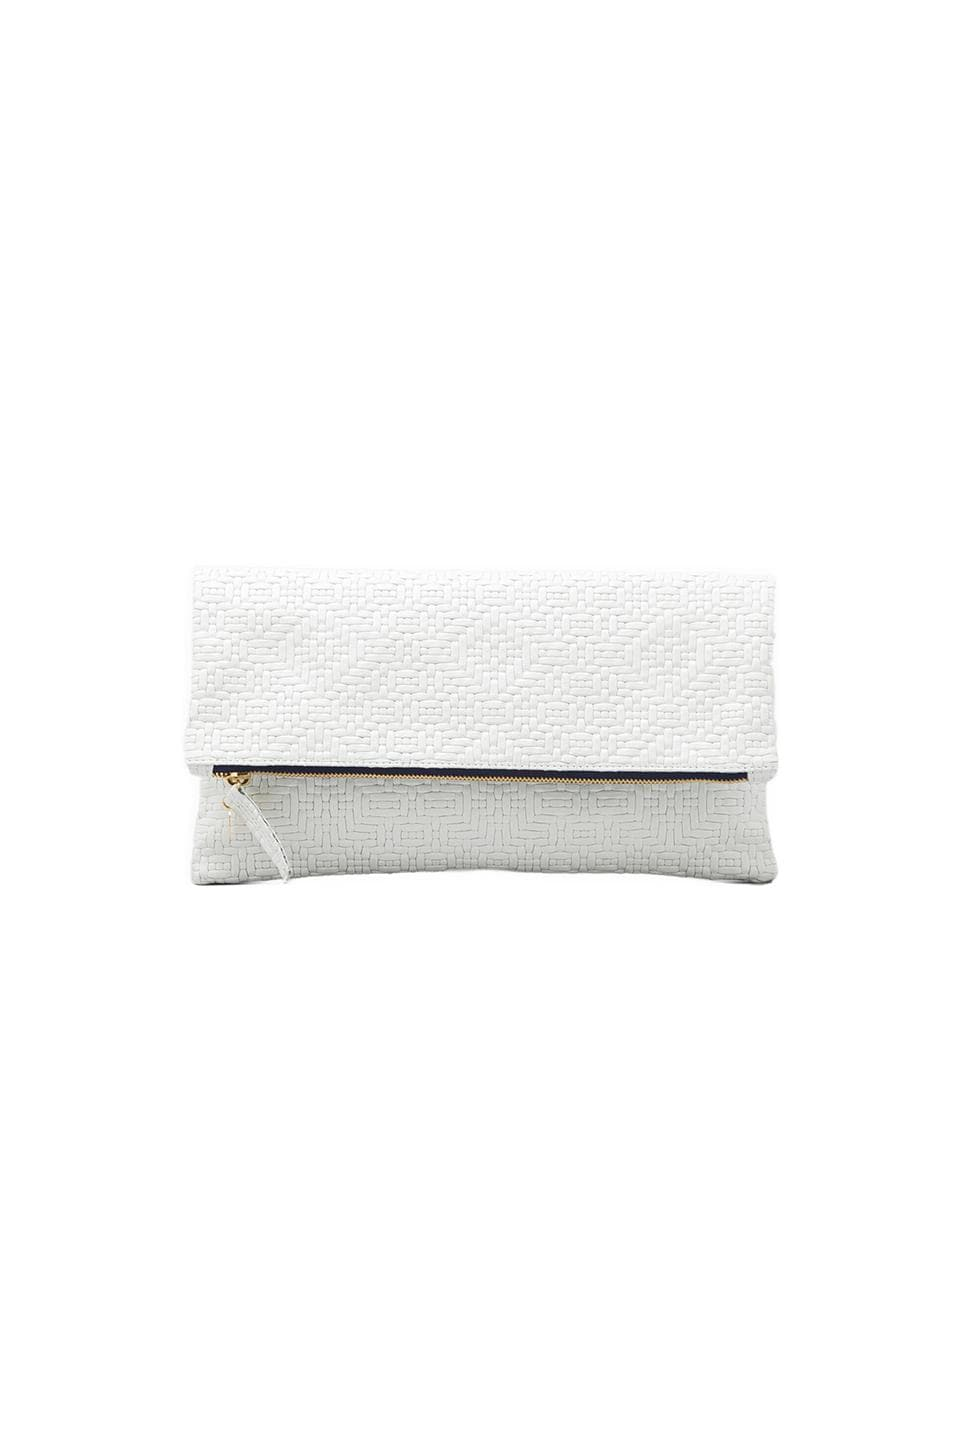 Clare V. Foldover Clutch in White Jigsaw